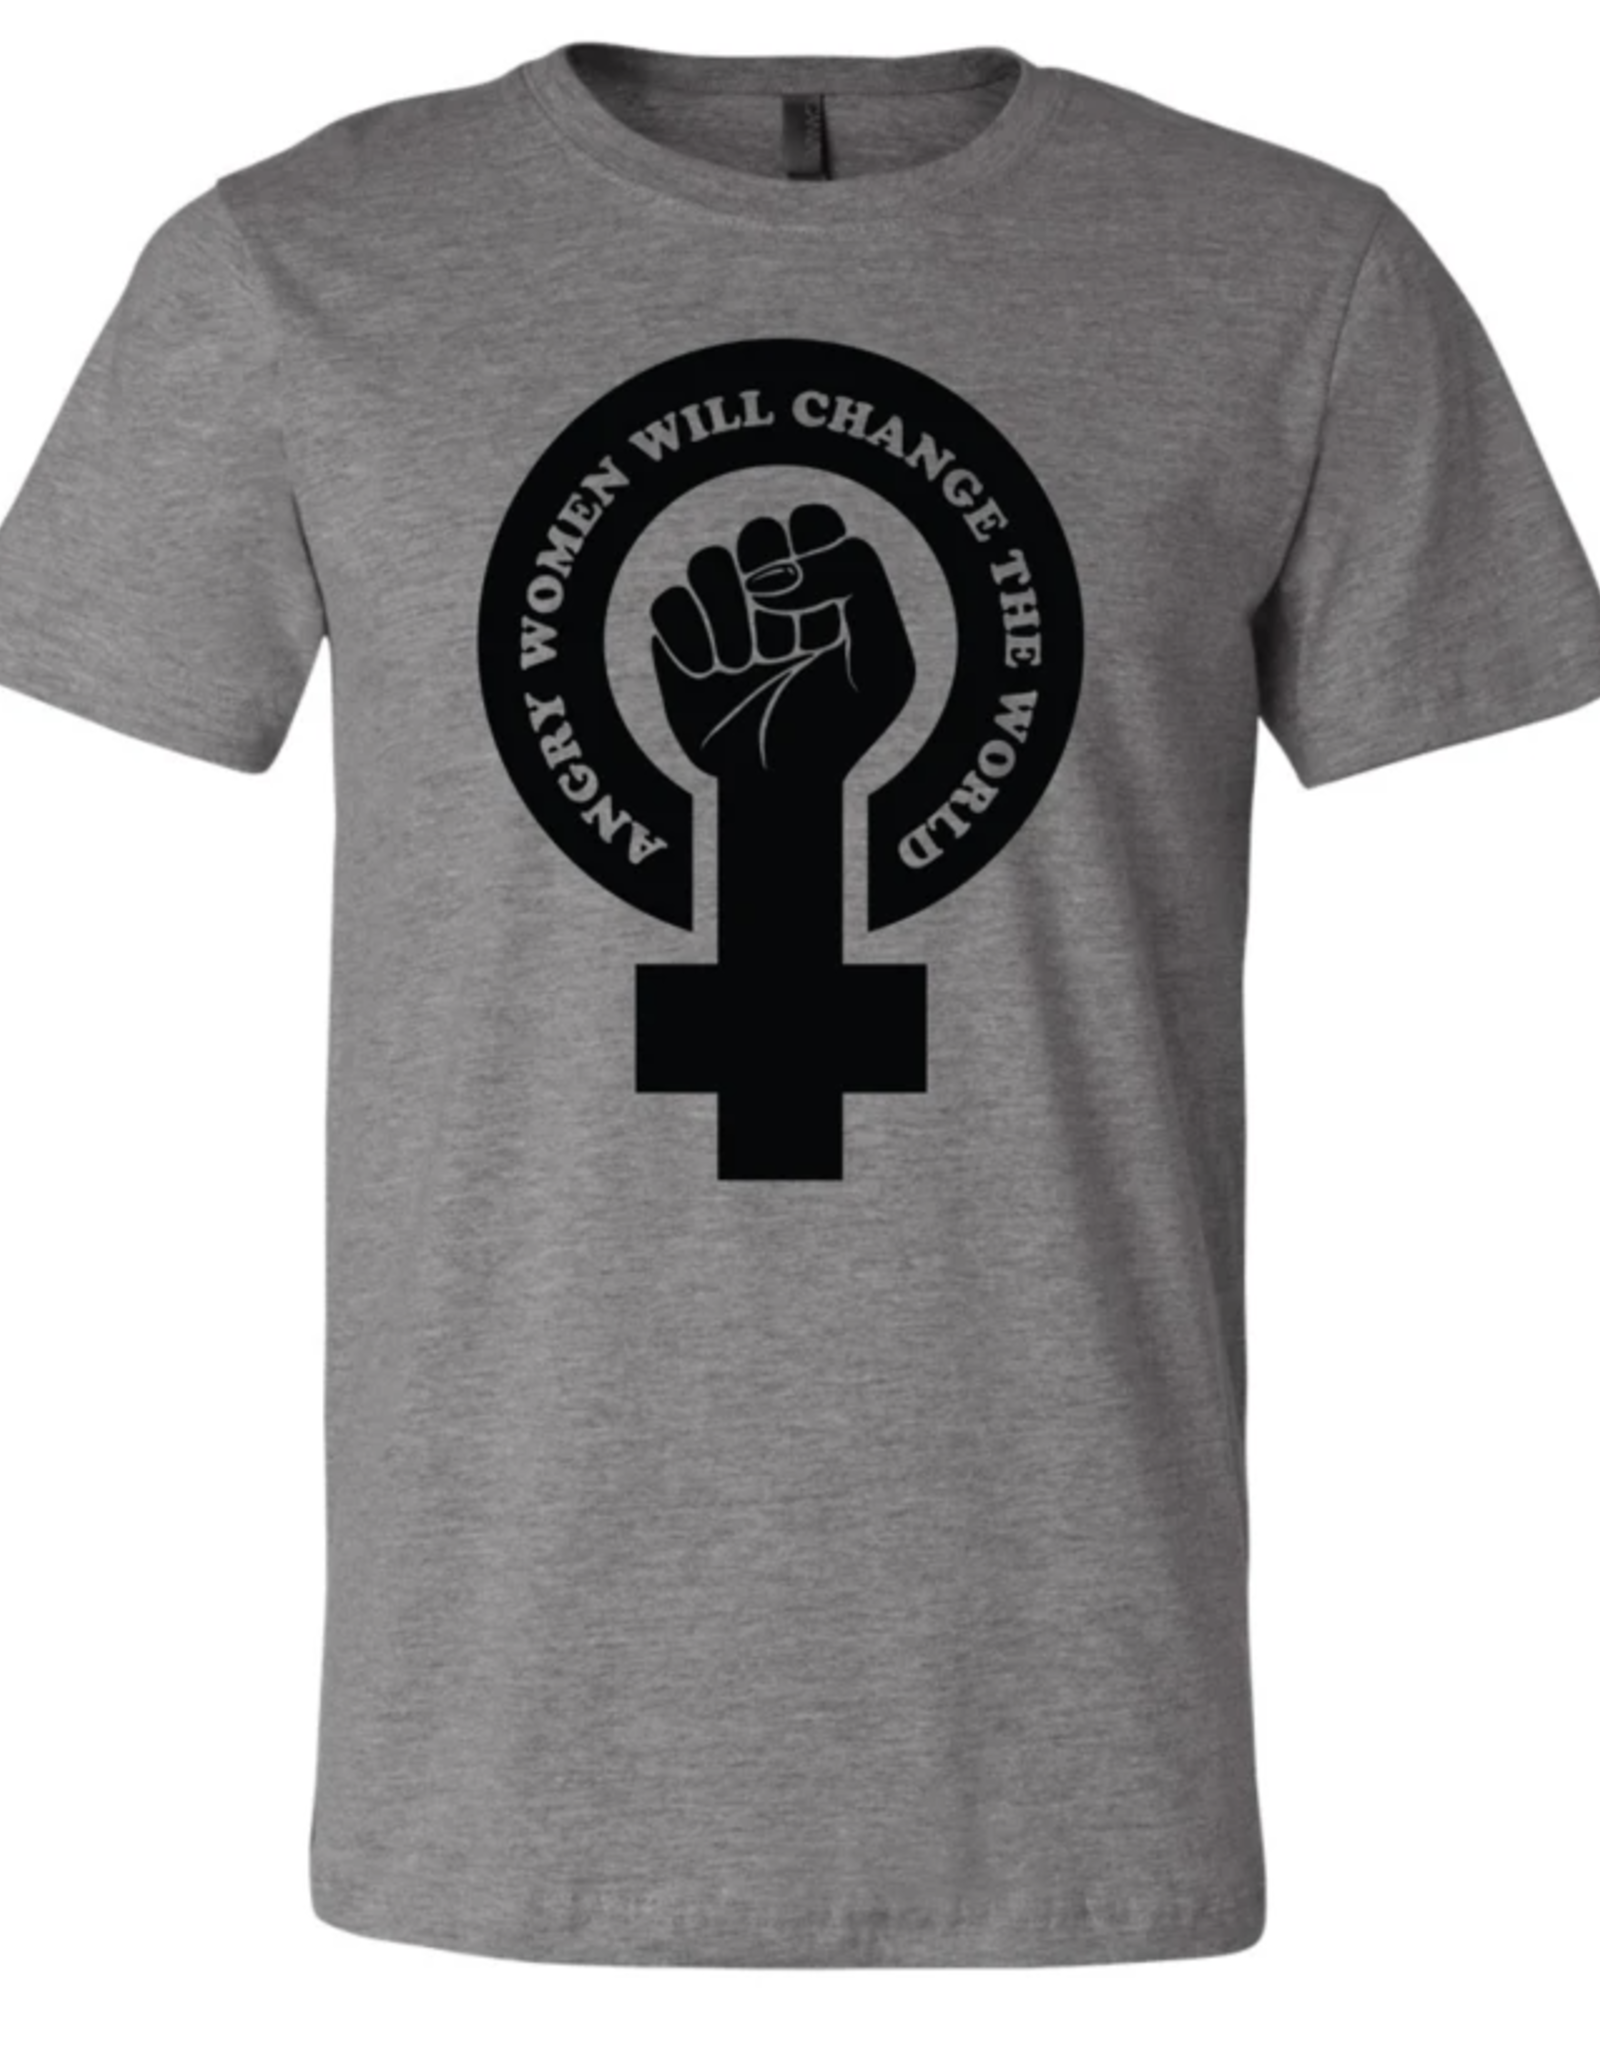 Angry Women Will Change The World Unisex Tee